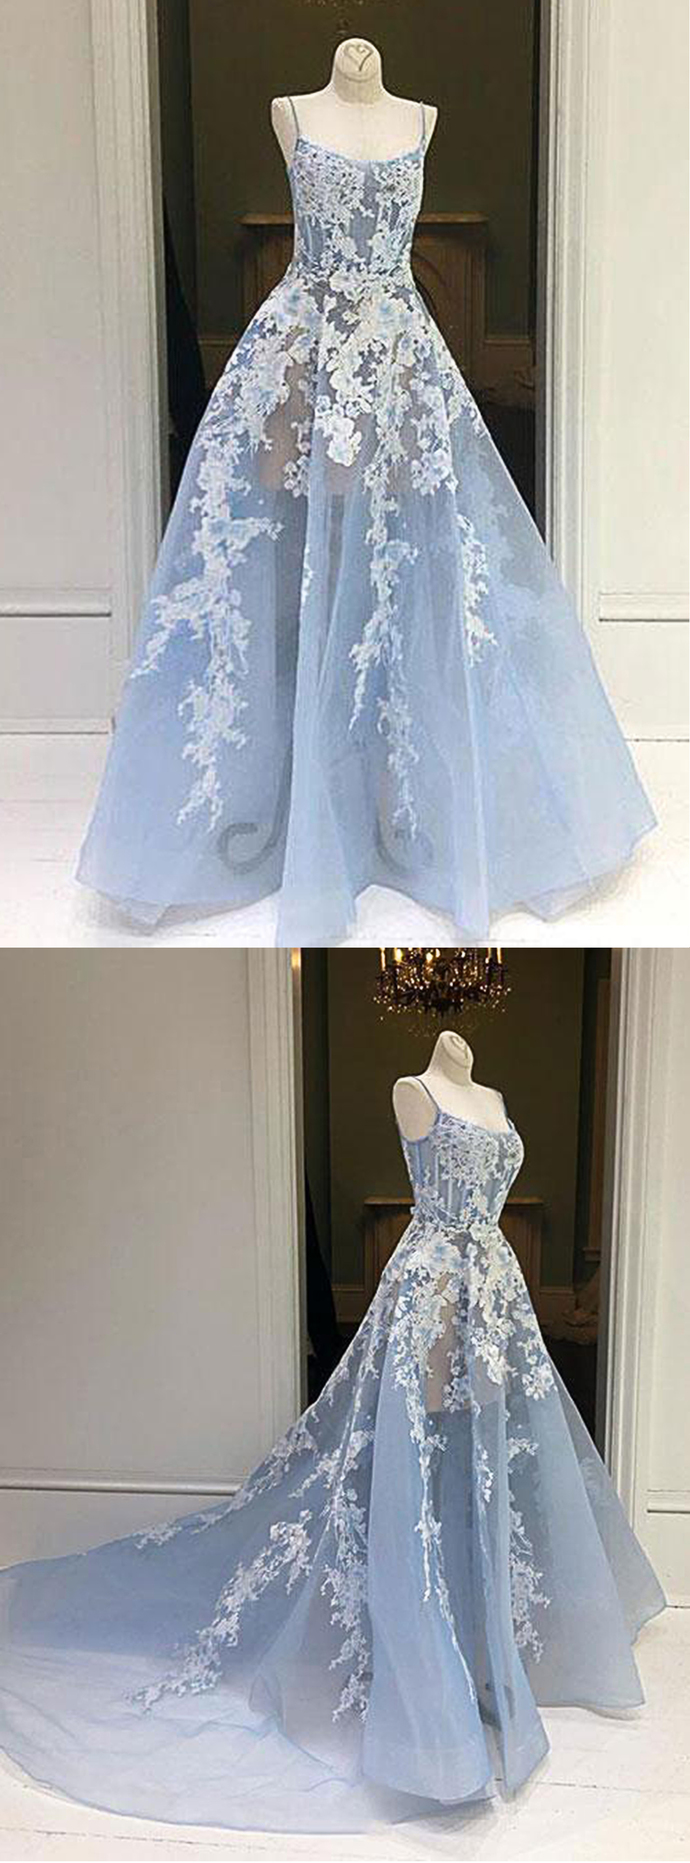 Blue Tulle Sweep Train Spaghetti Straps Evening Dress, Prom Dress With Applique